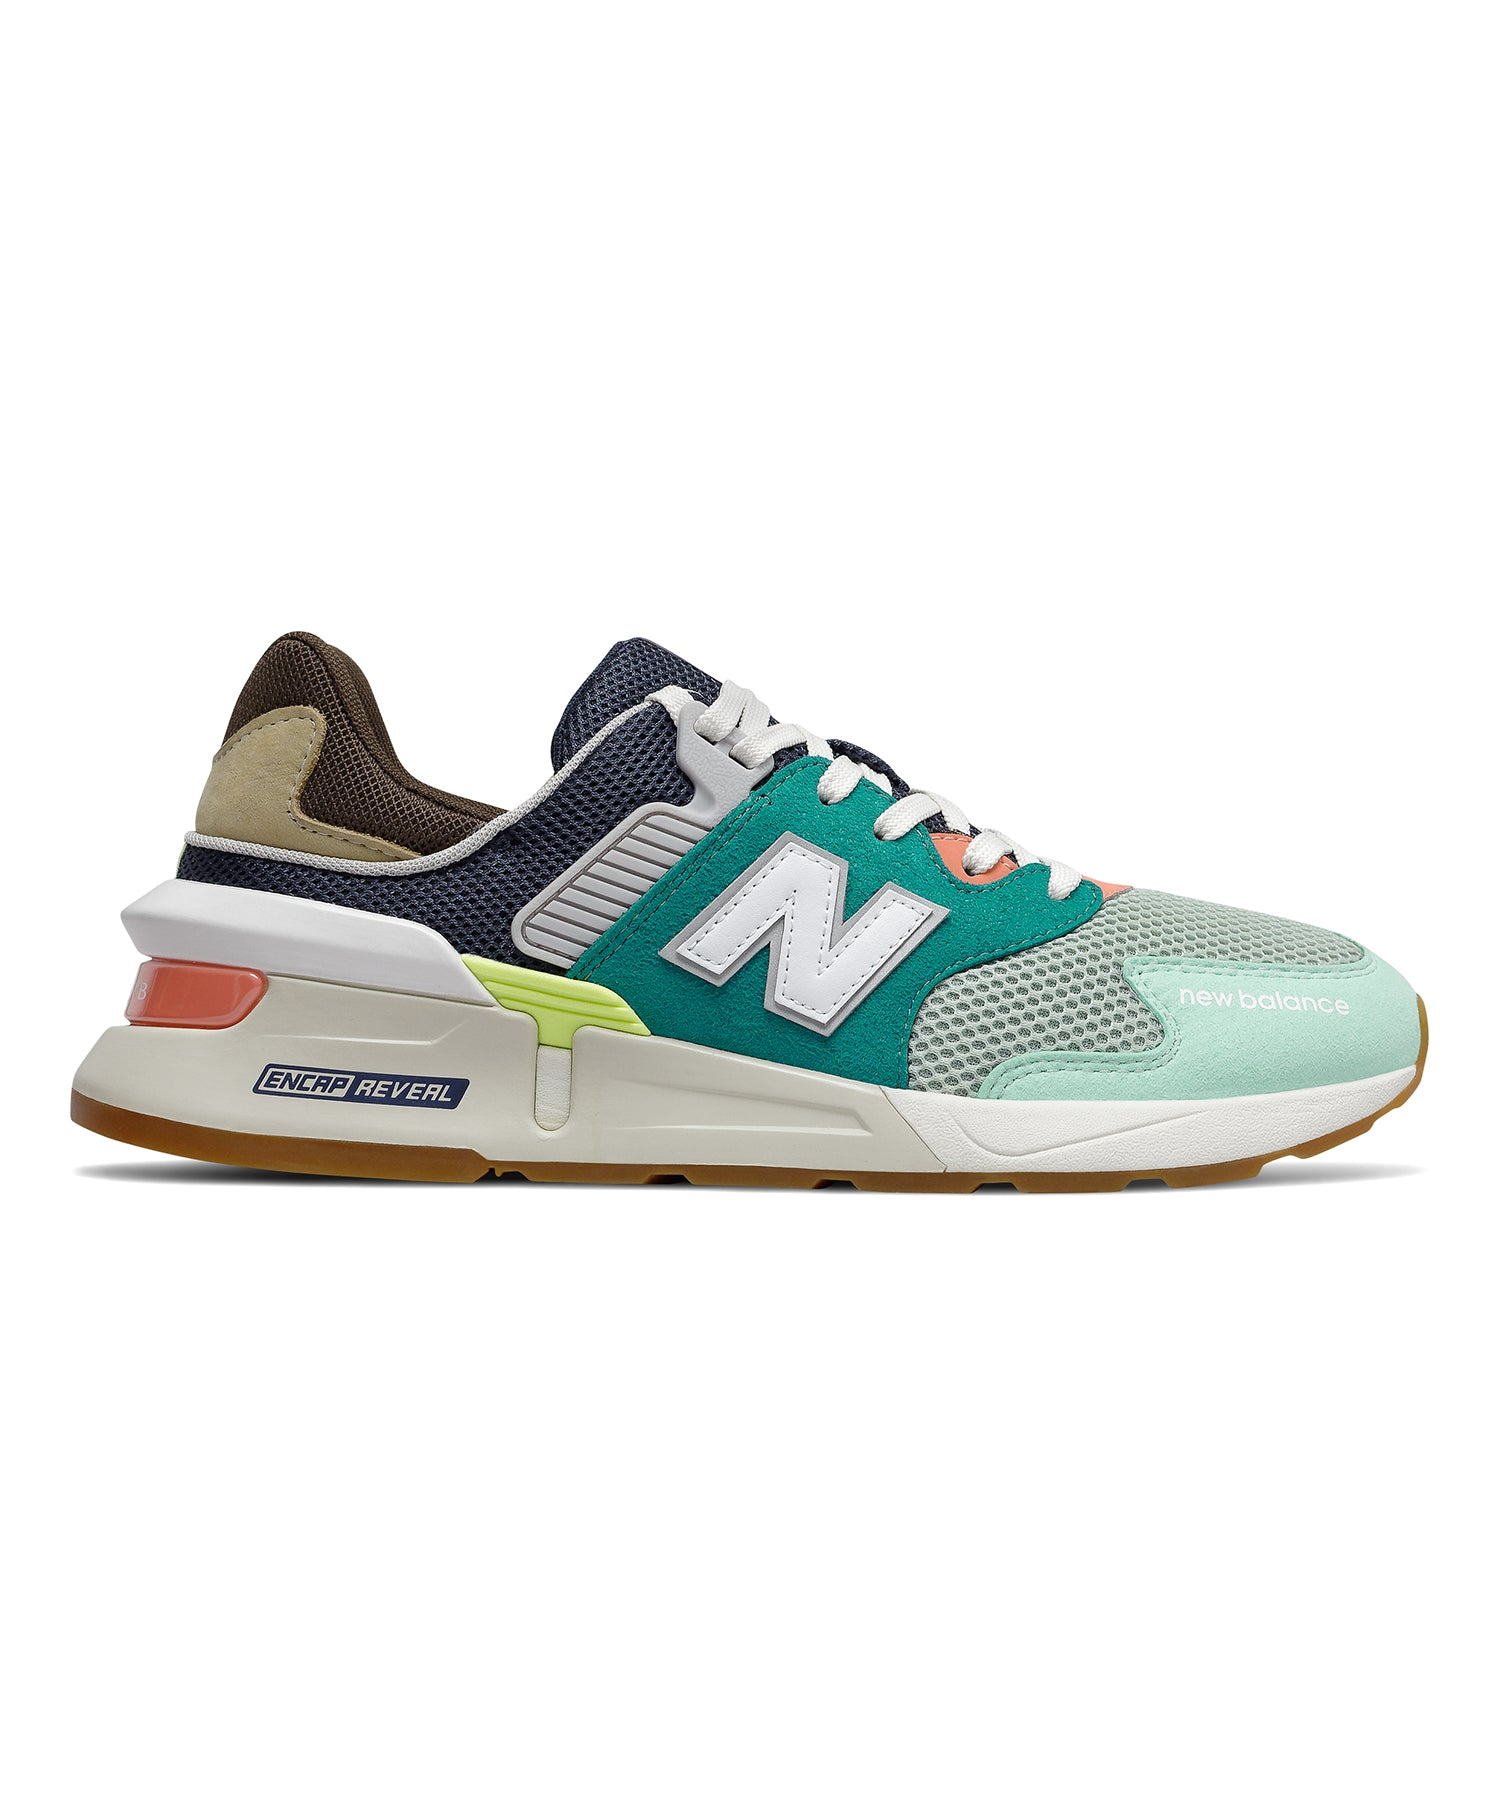 New Balance 997 Sport in Team Teal with Neo Mint